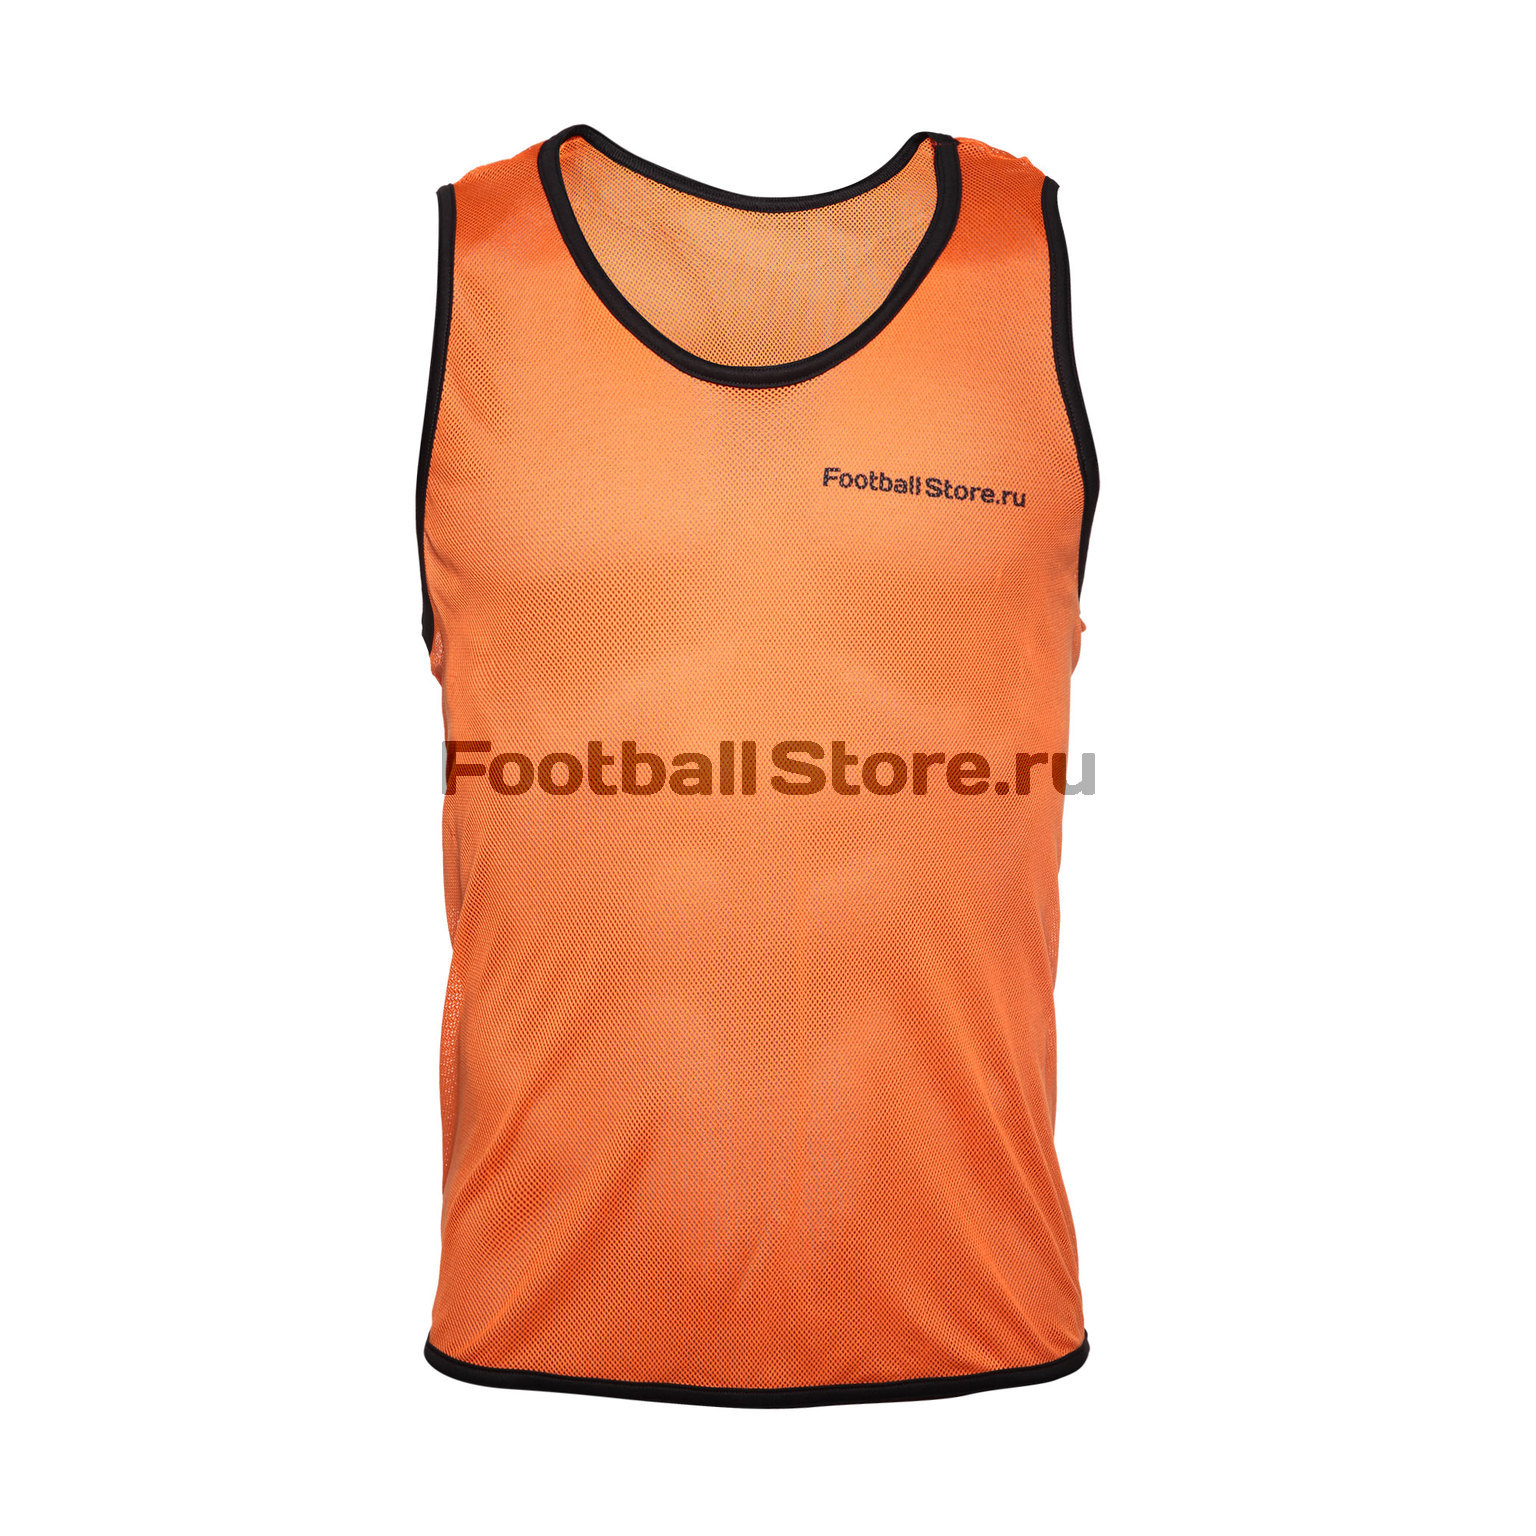 Манишка Footballstore 2K Sport Team 120708-815 500pcs 1210 1 2k 1k2 1 2k ohm 5